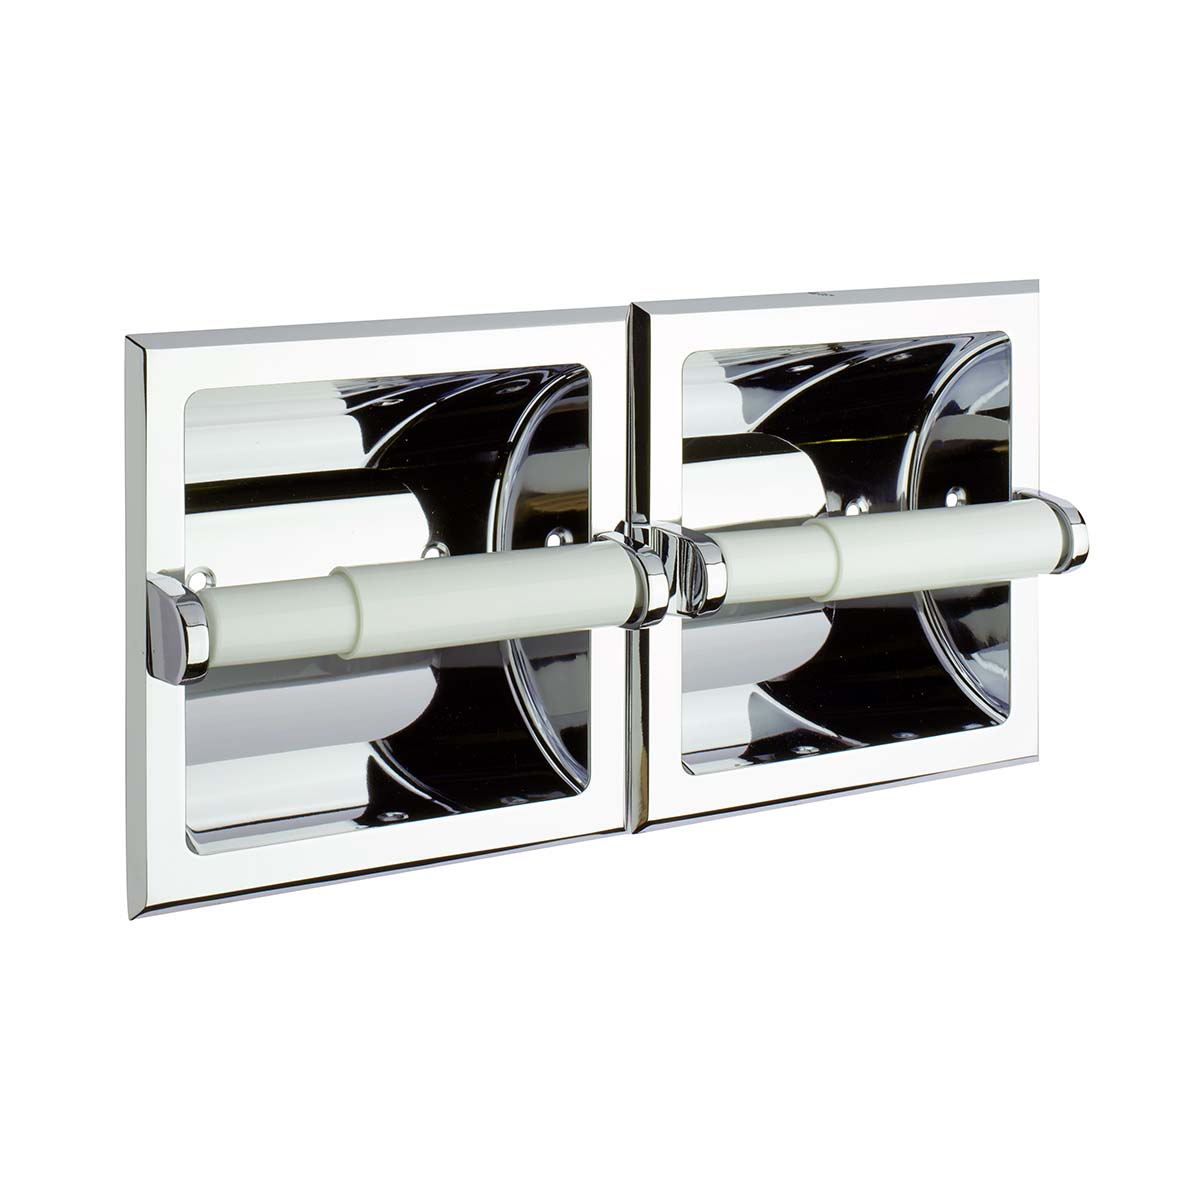 Twin Recessed Paper Roll Holder - Stainless Steel